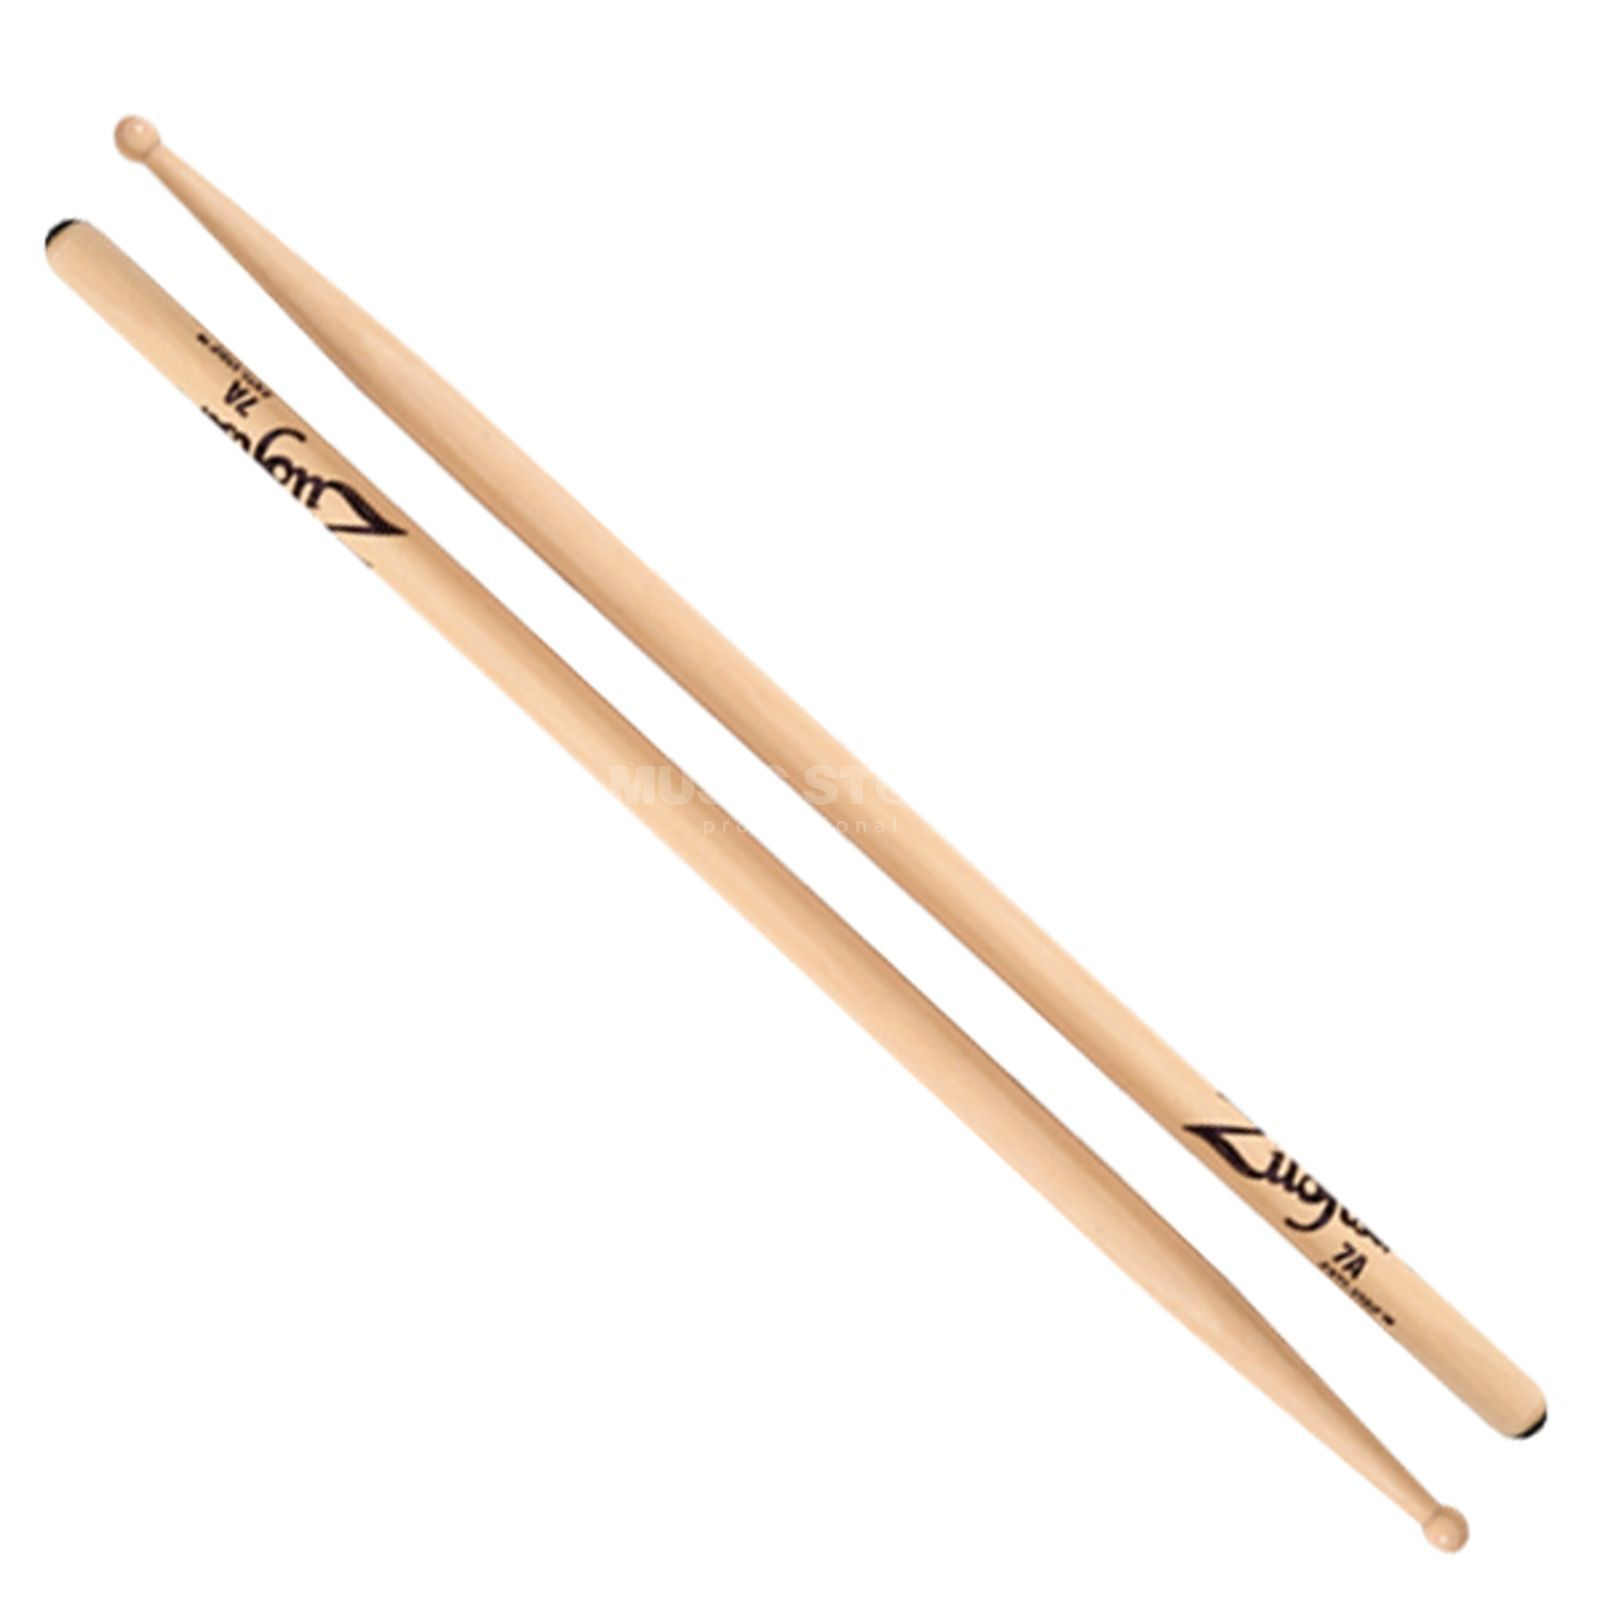 Zildjian Anti-Vibe 7A Sticks, Wood Tip Product Image